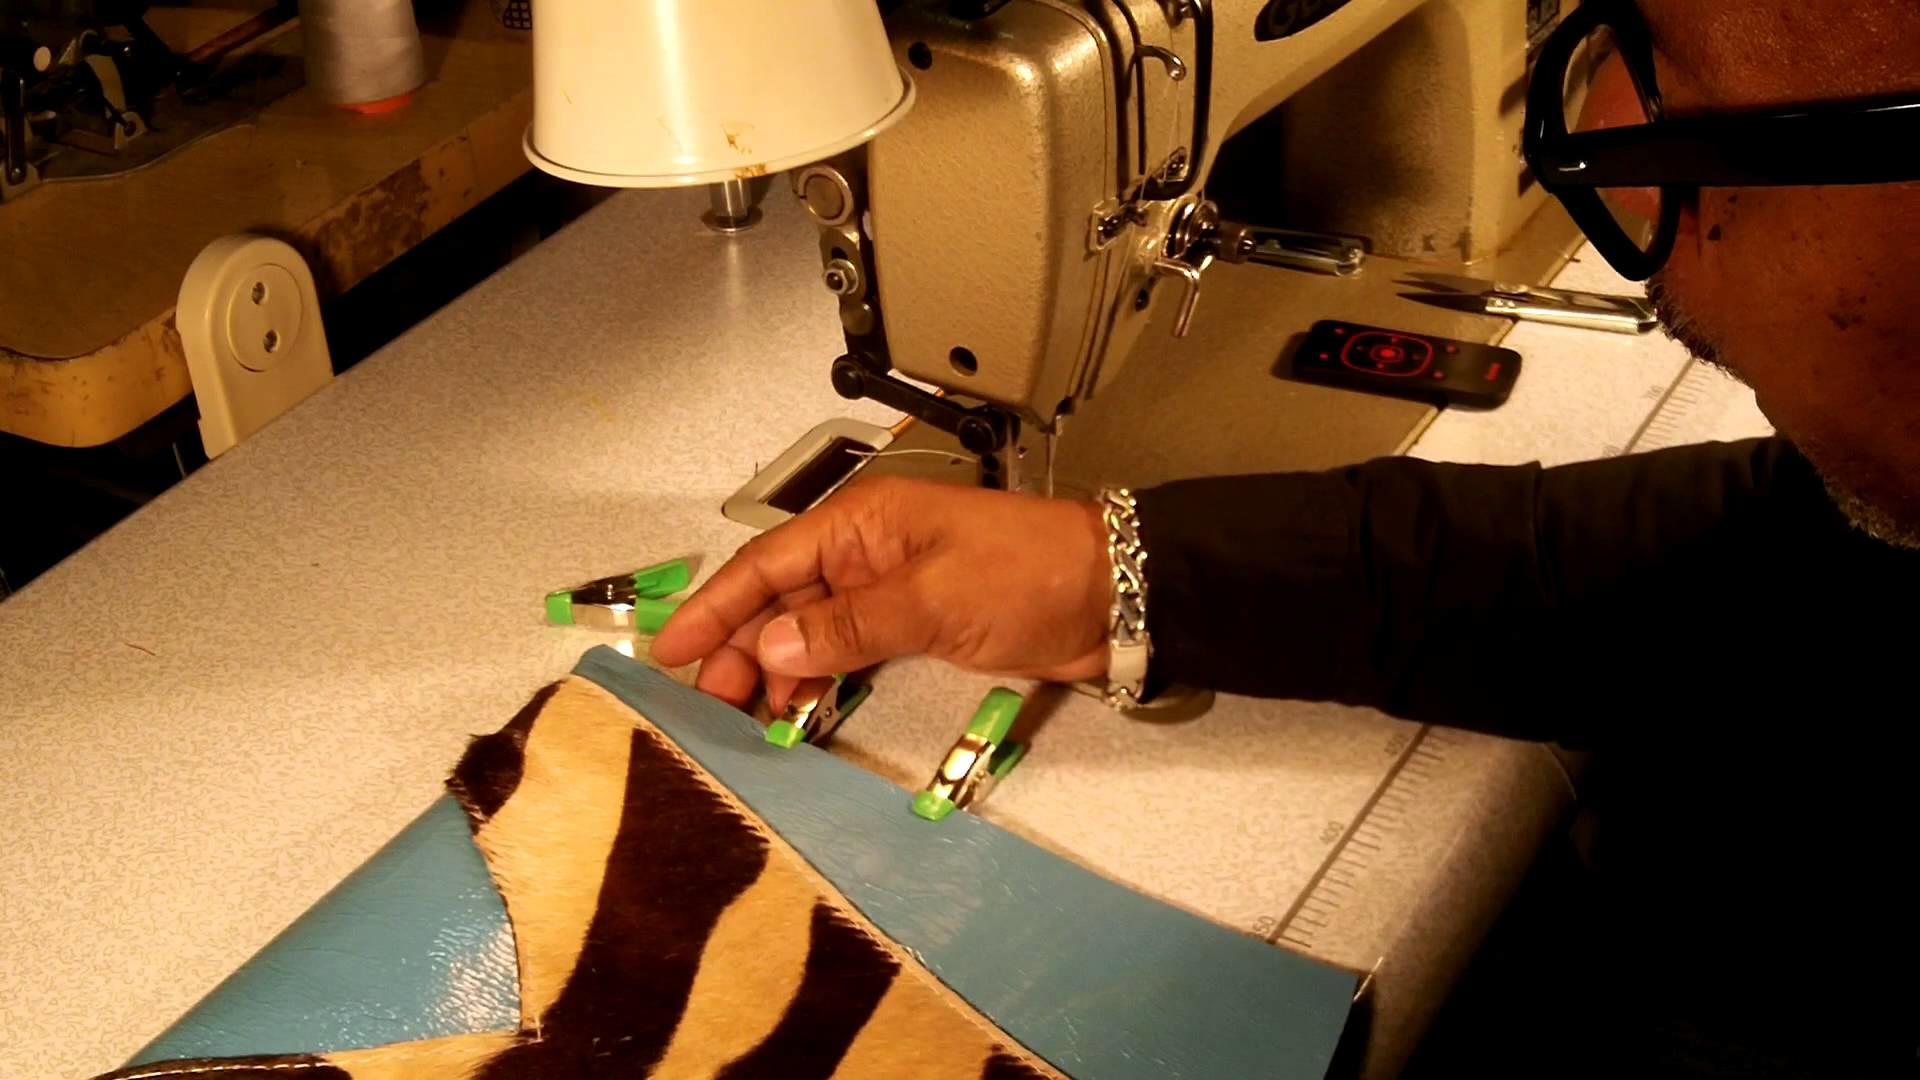 How To Make A Leather Clutch Bag Part 4 of 5